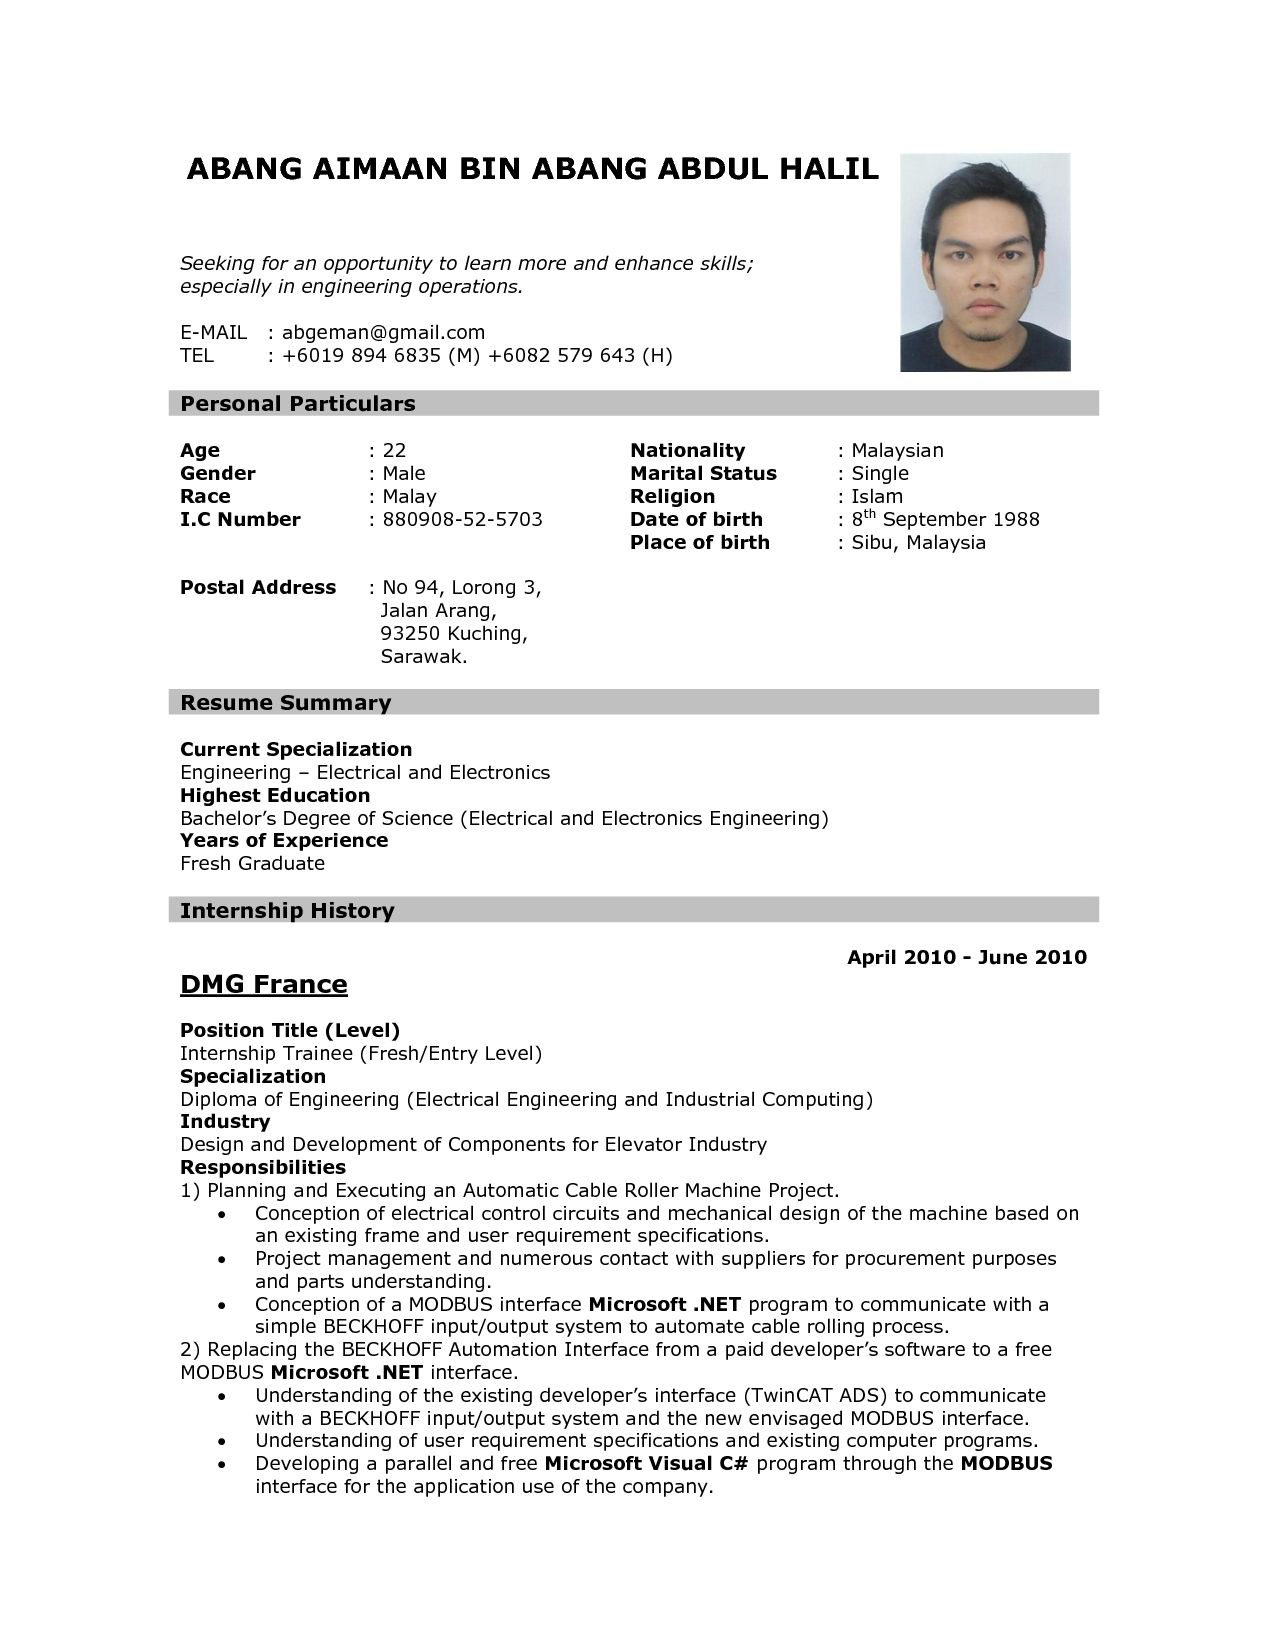 sample job resume format mr sample resume best simple format of nice sample resume for applying a job sample resume for applying a job skills for high school resume resume format web good resume examples